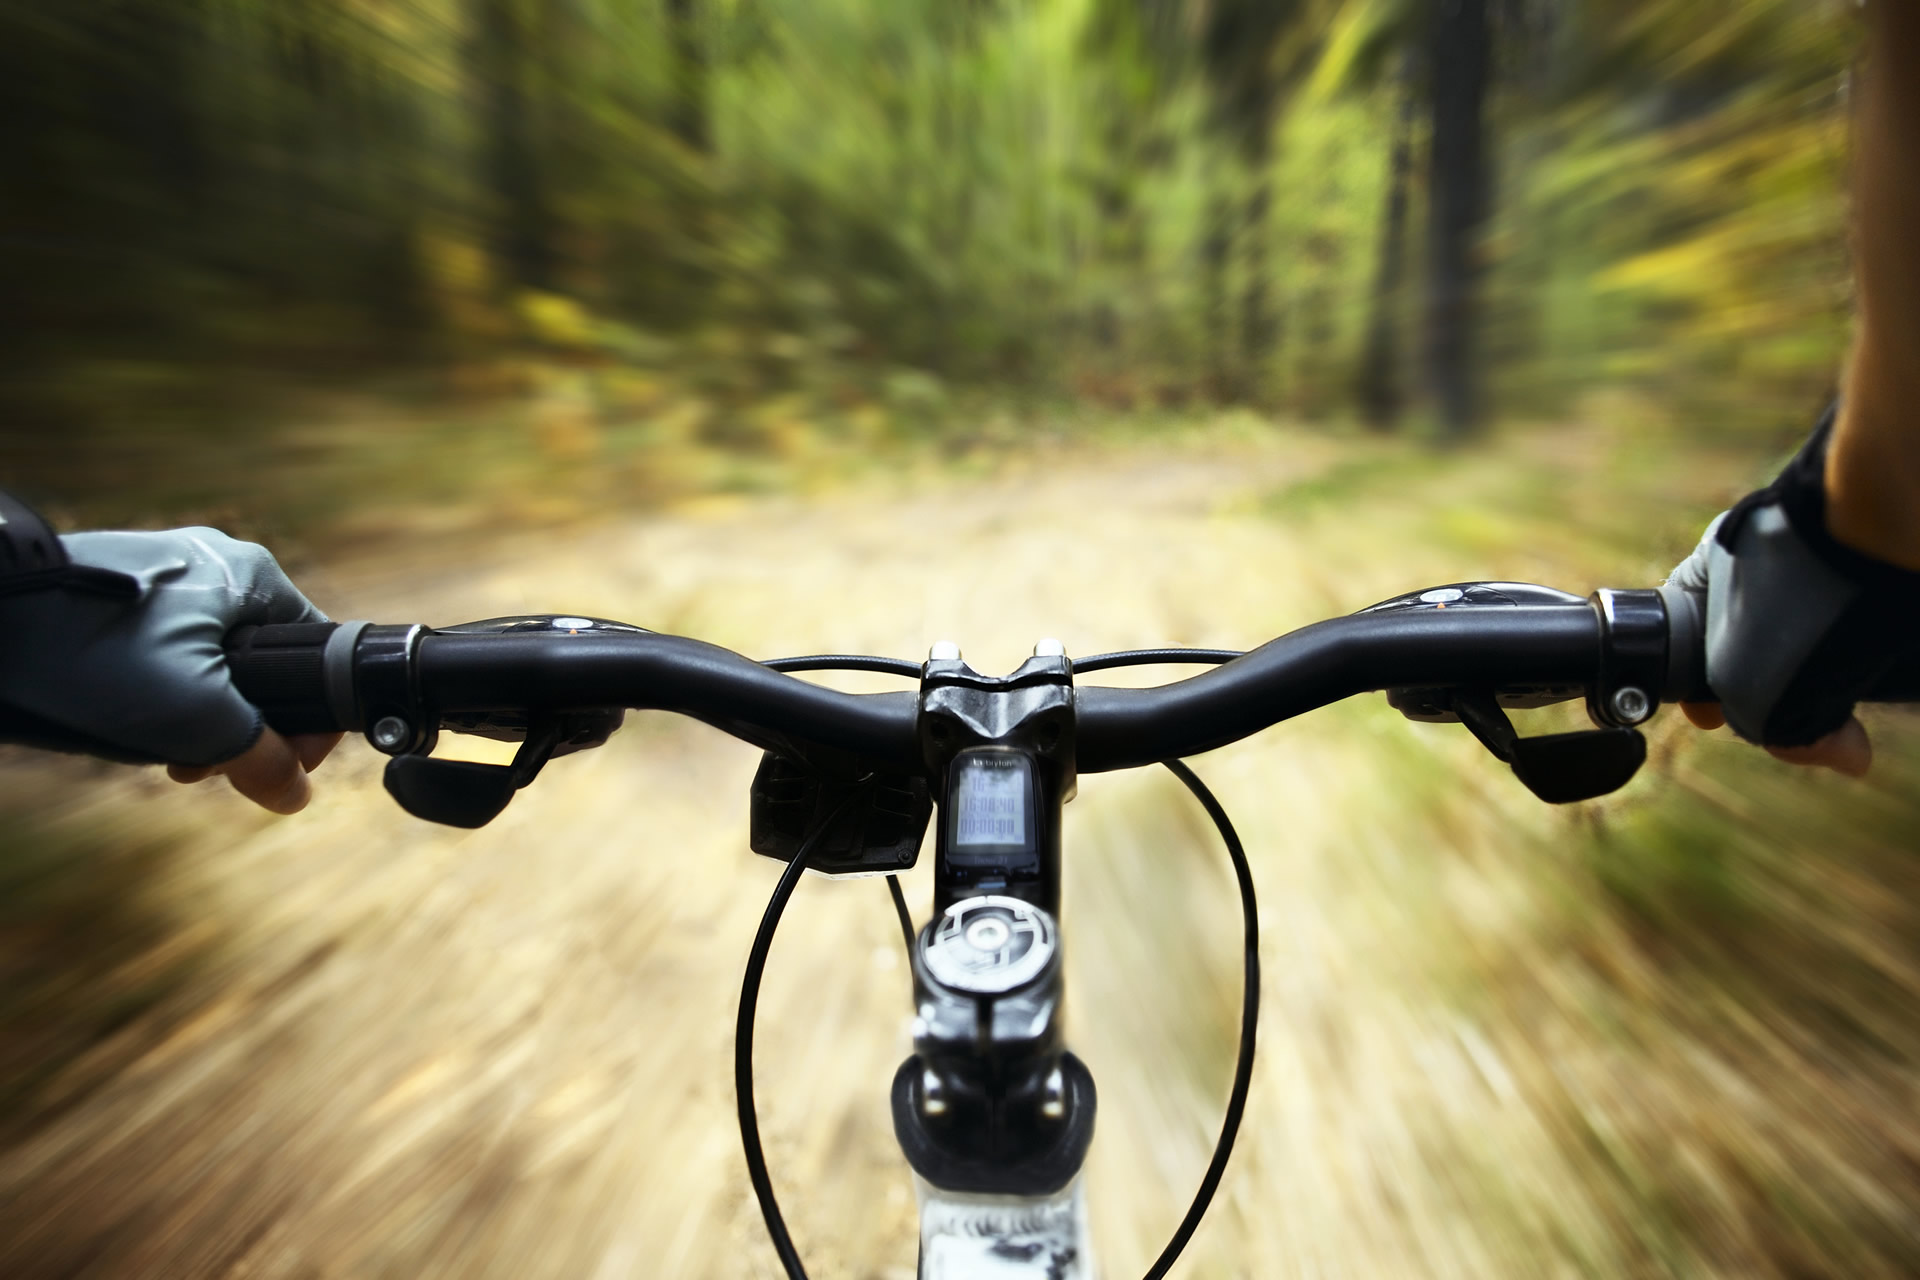 Cycling in Plett's forest trails